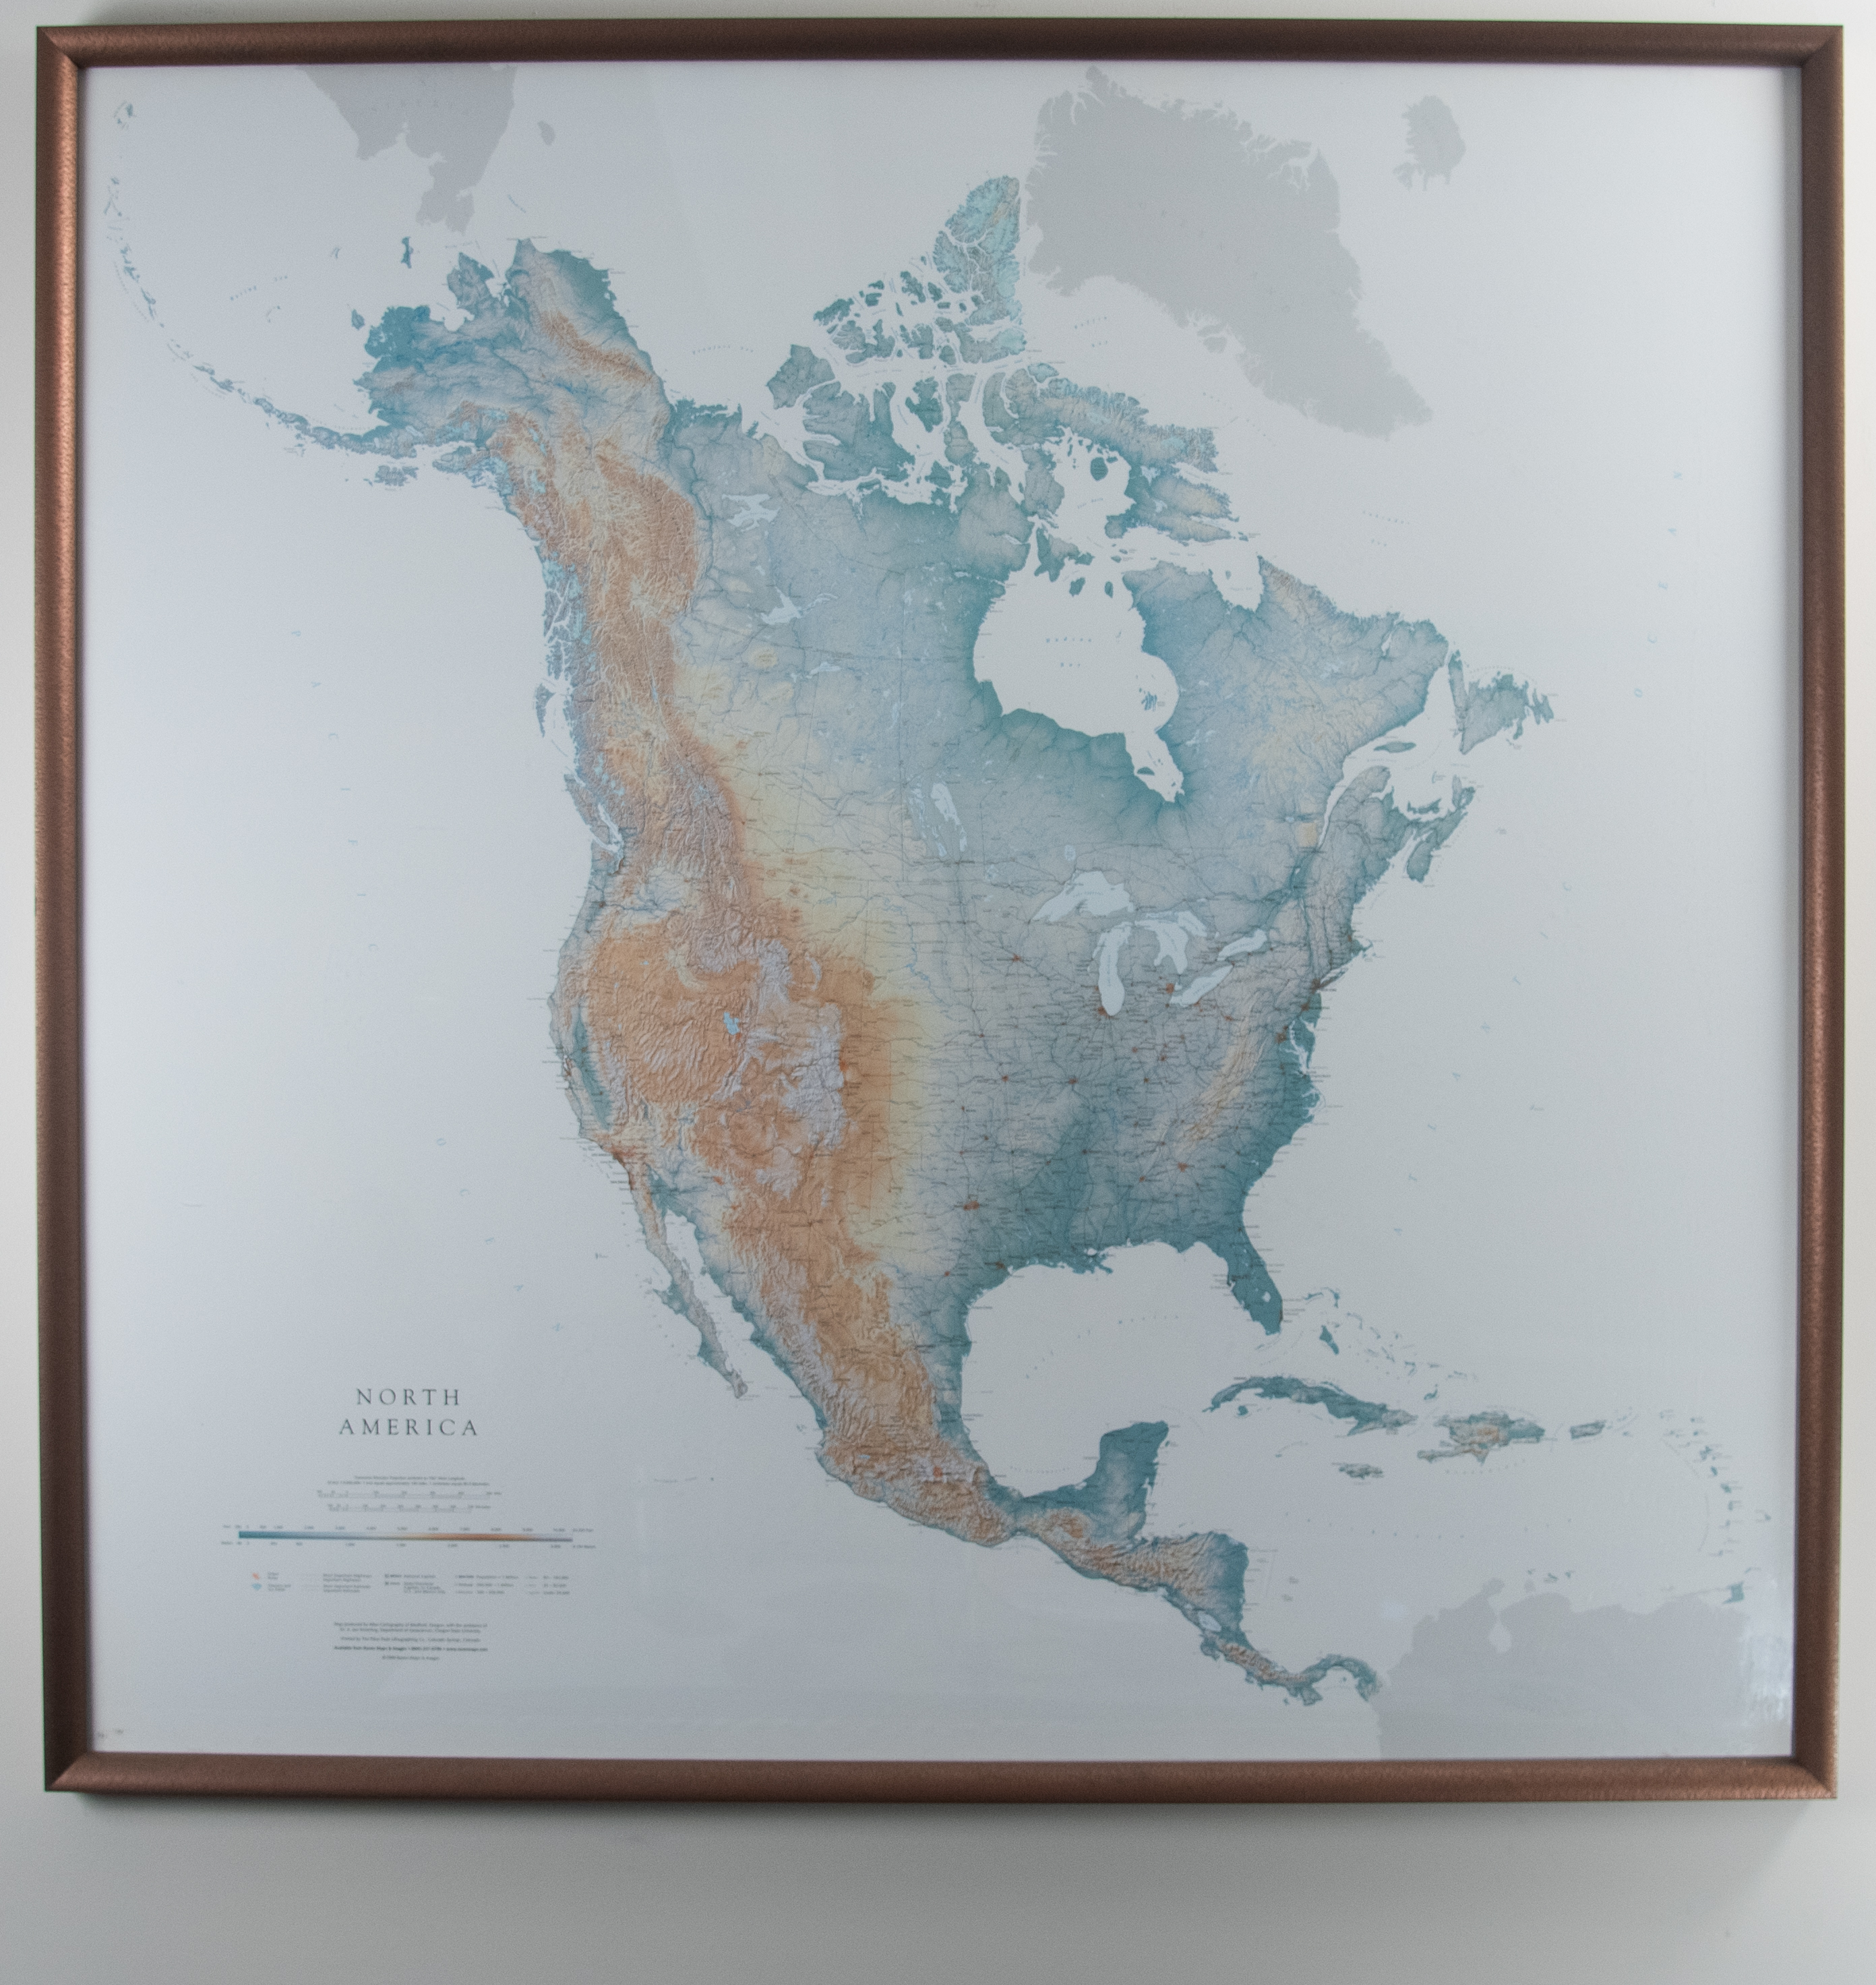 Map Of America Kansas.Raven Maps And Images Map Of North America Kansas City Public Library